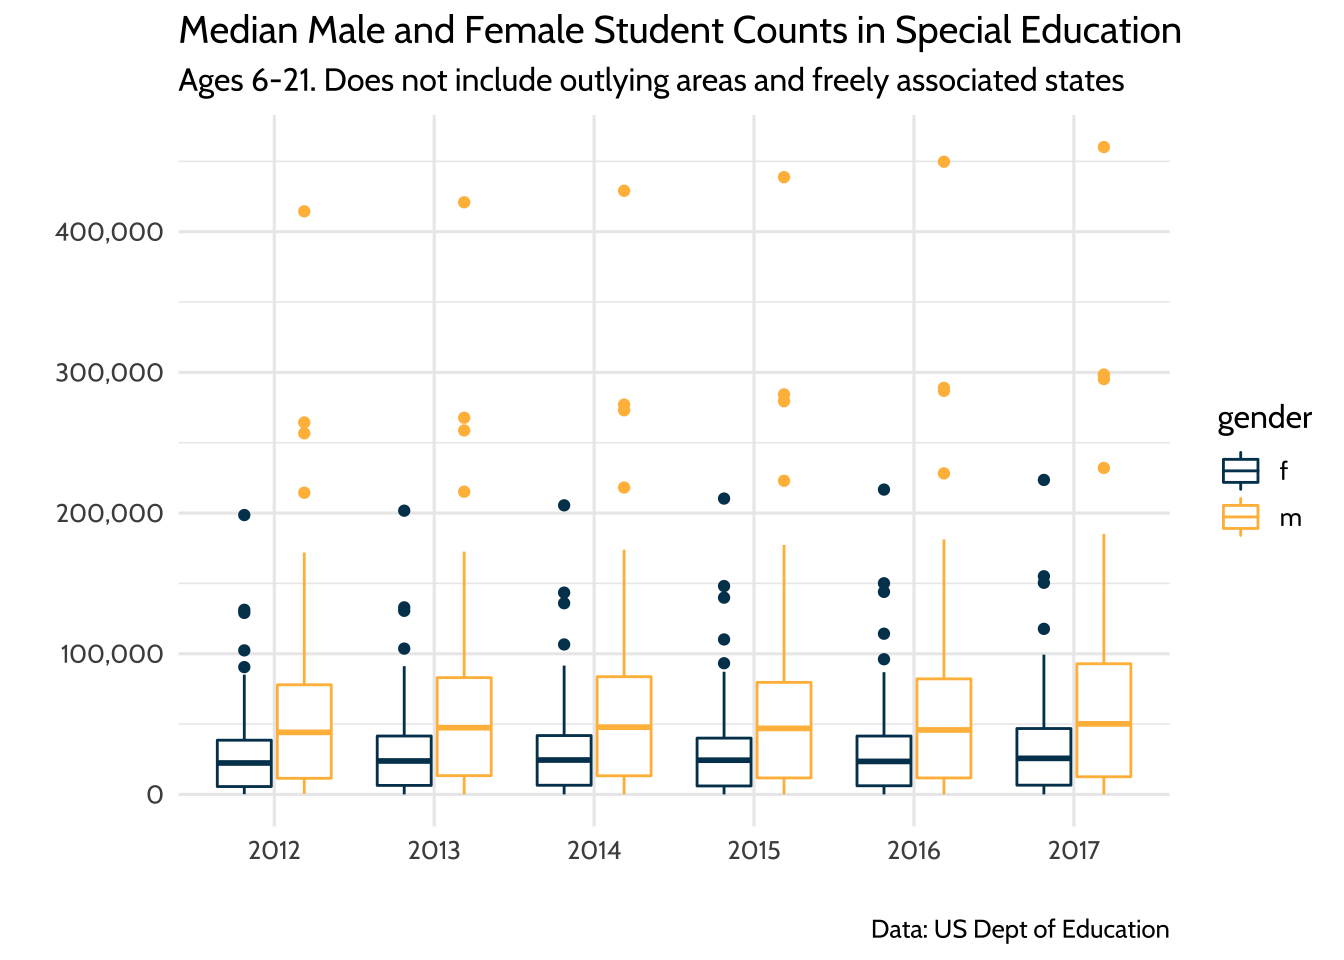 Median Male and Female Student Counts in Special Education